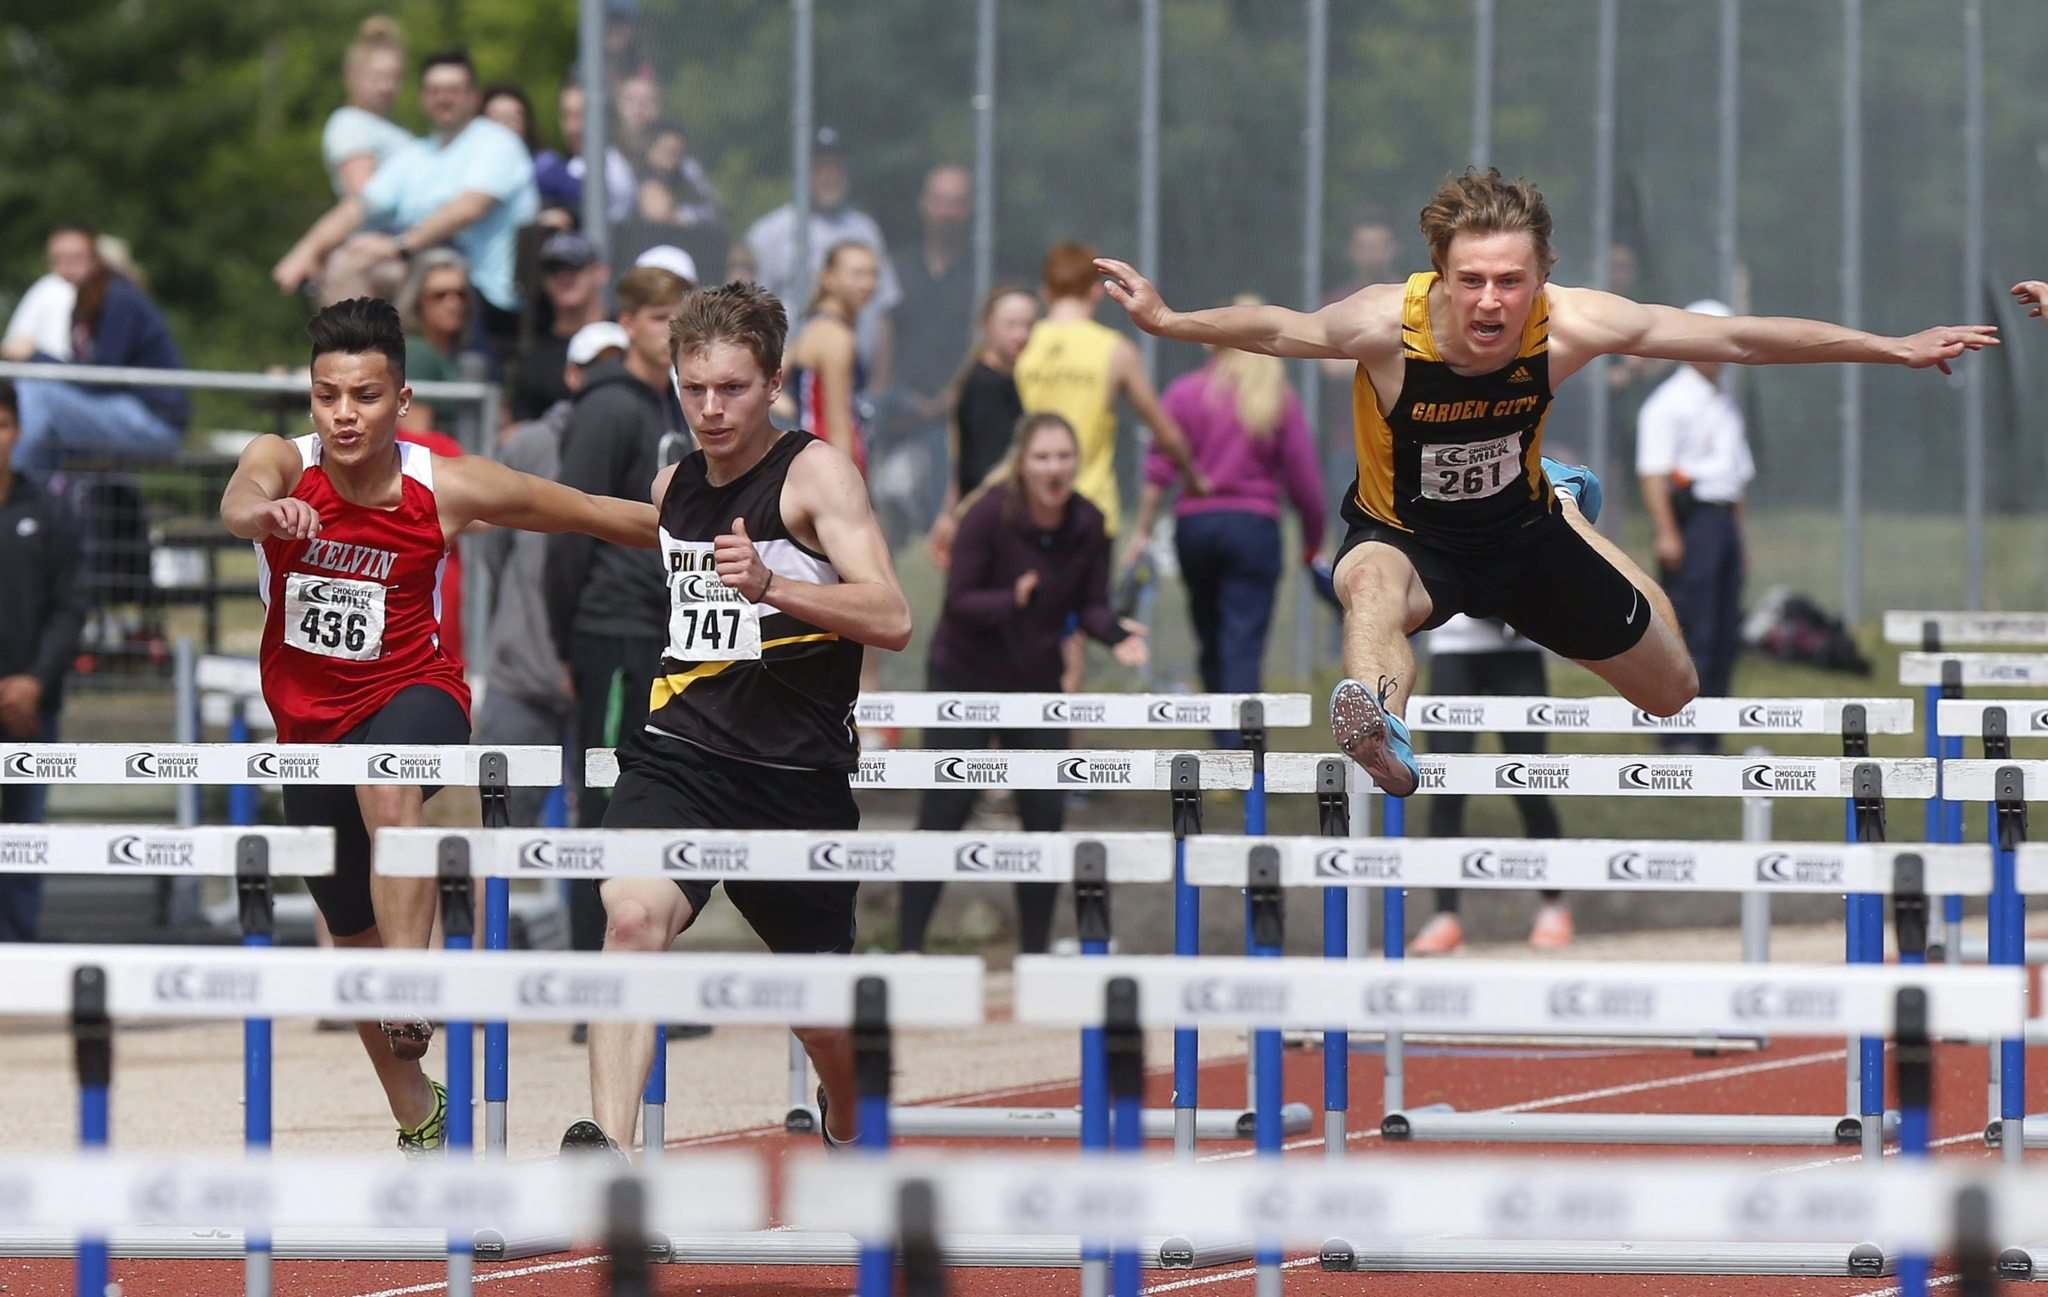 WAYNE GLOWACKI / WINNIPEG FREE PRESS</p><p>From left: Cyril Hernandez from Kelvin High School, Luke VanDamme from Pilot Mound Collegiate and Michael Boguski from Garden City Collegiate race in the varsity boys 100-metre hurdles event at the Provincial High School Milk Track and Field Championship at the University of Manitoba Stadium Saturday.</p>